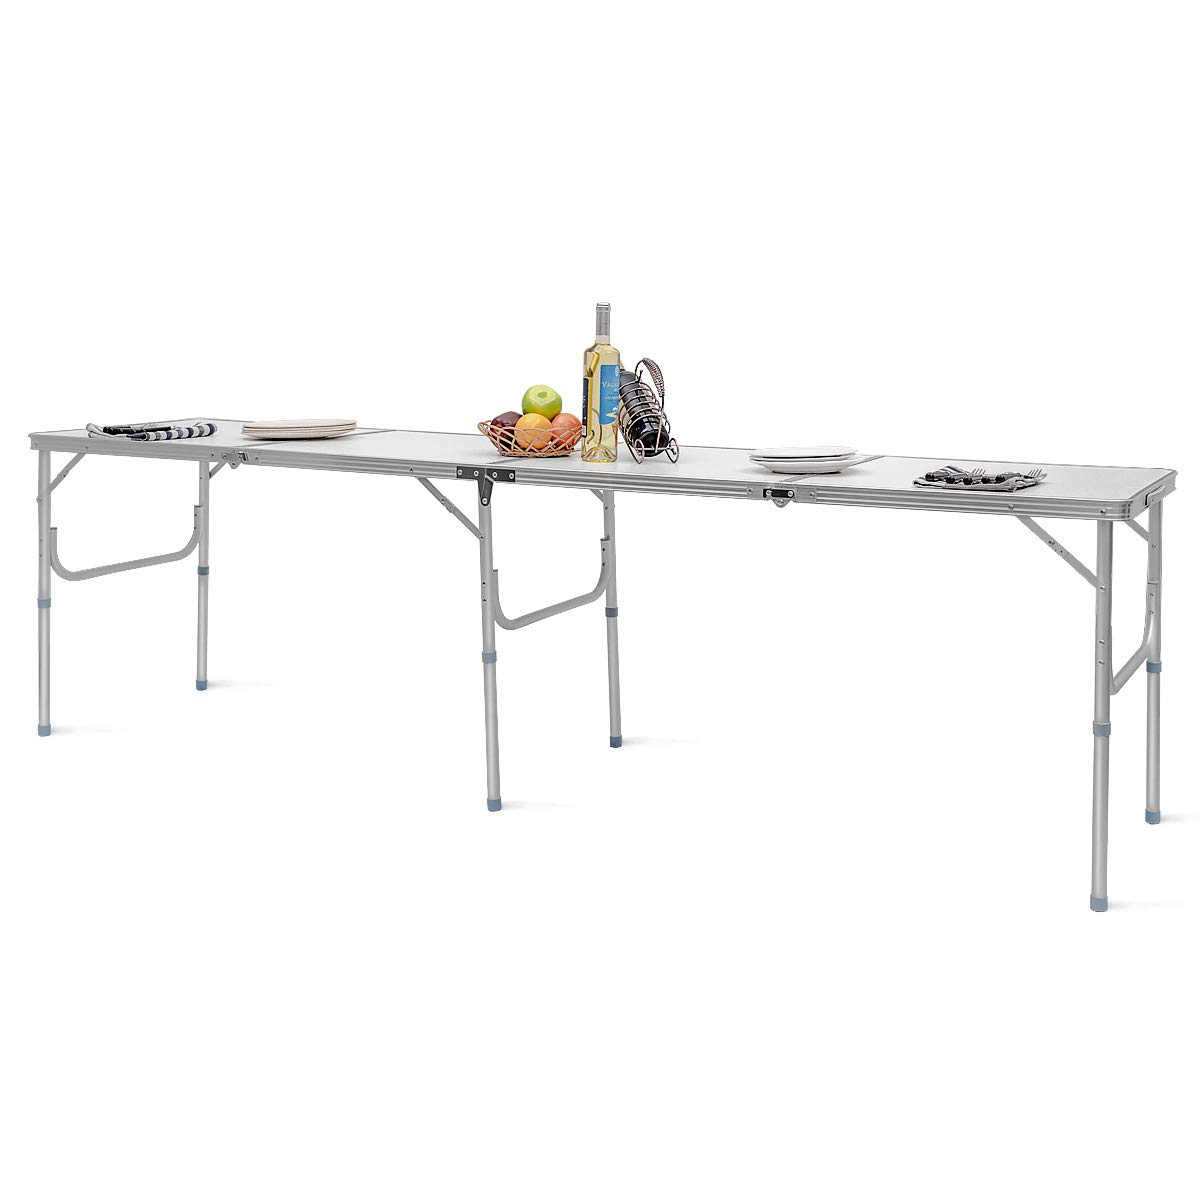 8 Rectangular Picnic Table, Surface Mount, Blue 96 Long